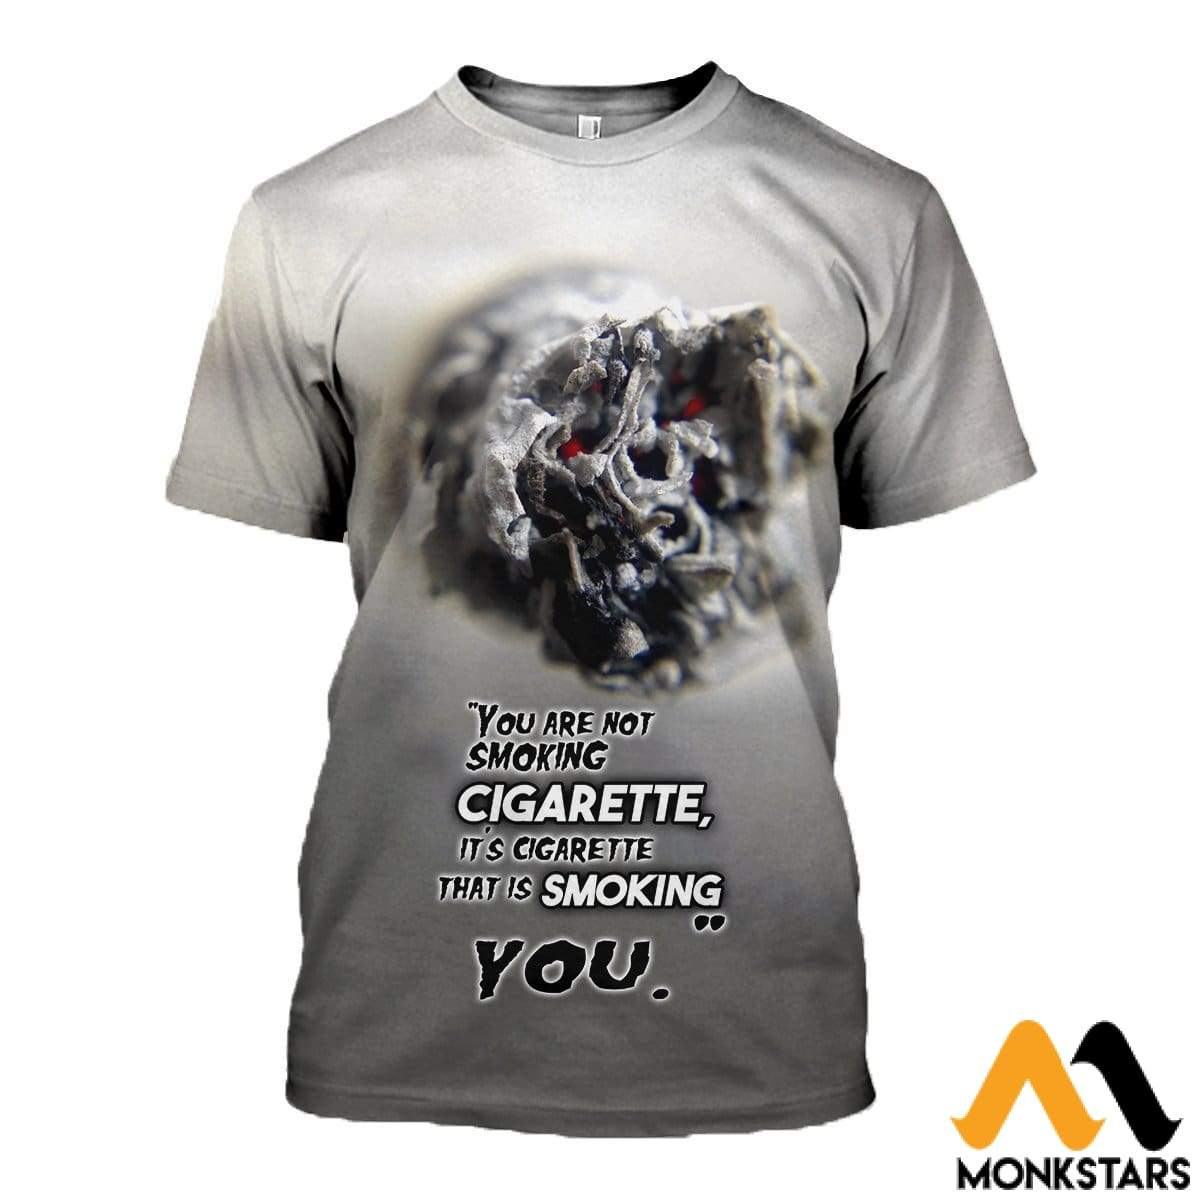 3D All Over Printed Cigarette T-Shirt Hoodie Sctl170411 / Xs Clothes